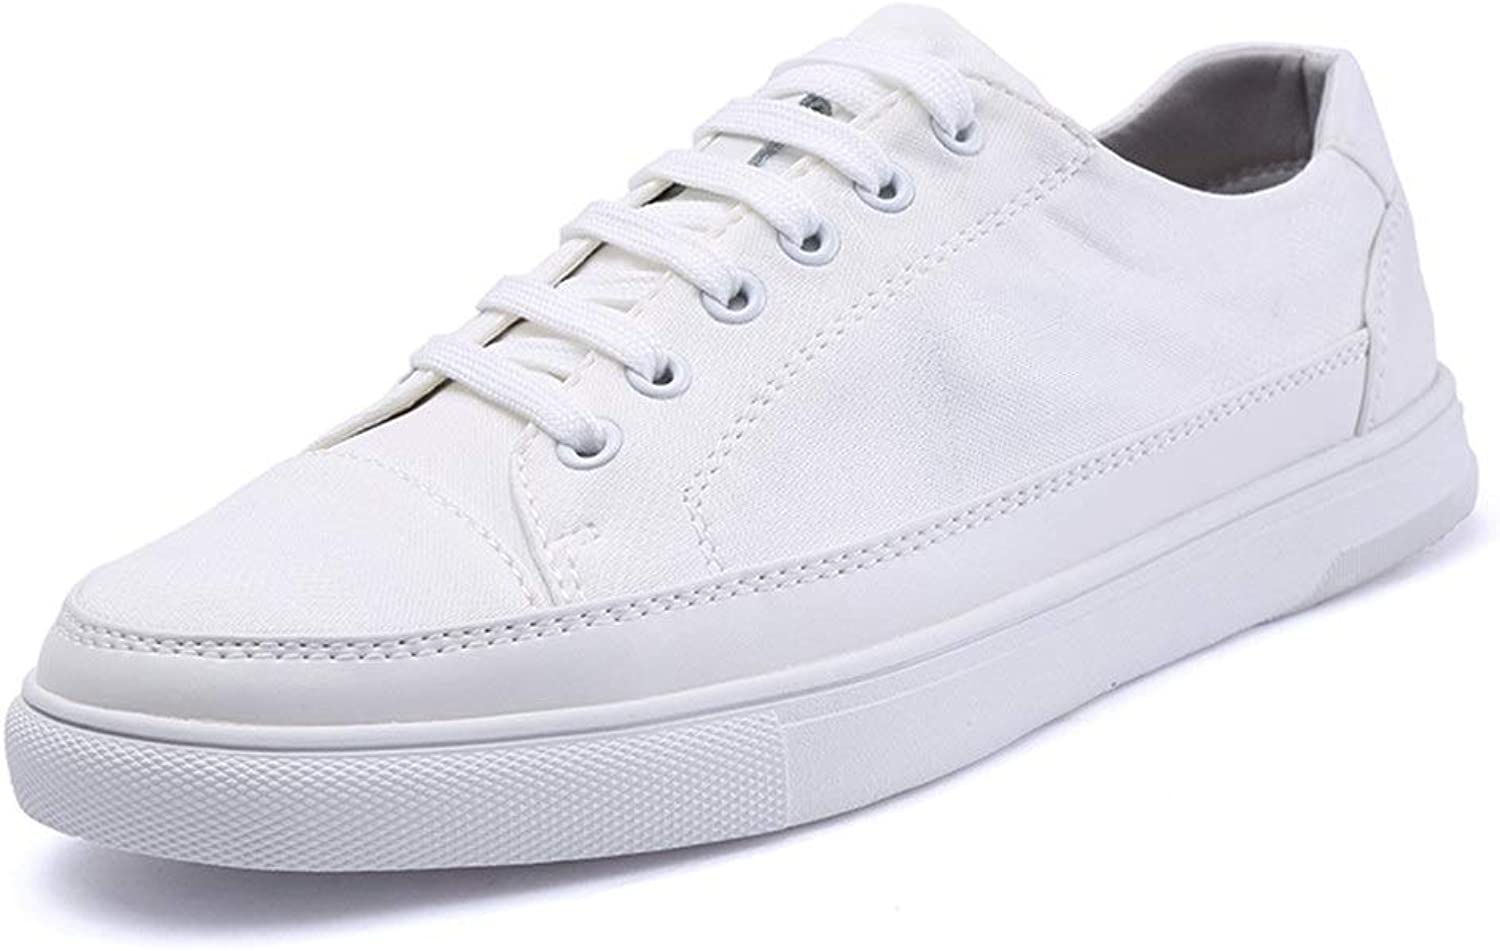 Fashion Sneaker for Men Sports shoes Lace Up Style Cloth Leather Classic Little White shoes Cricket shoes